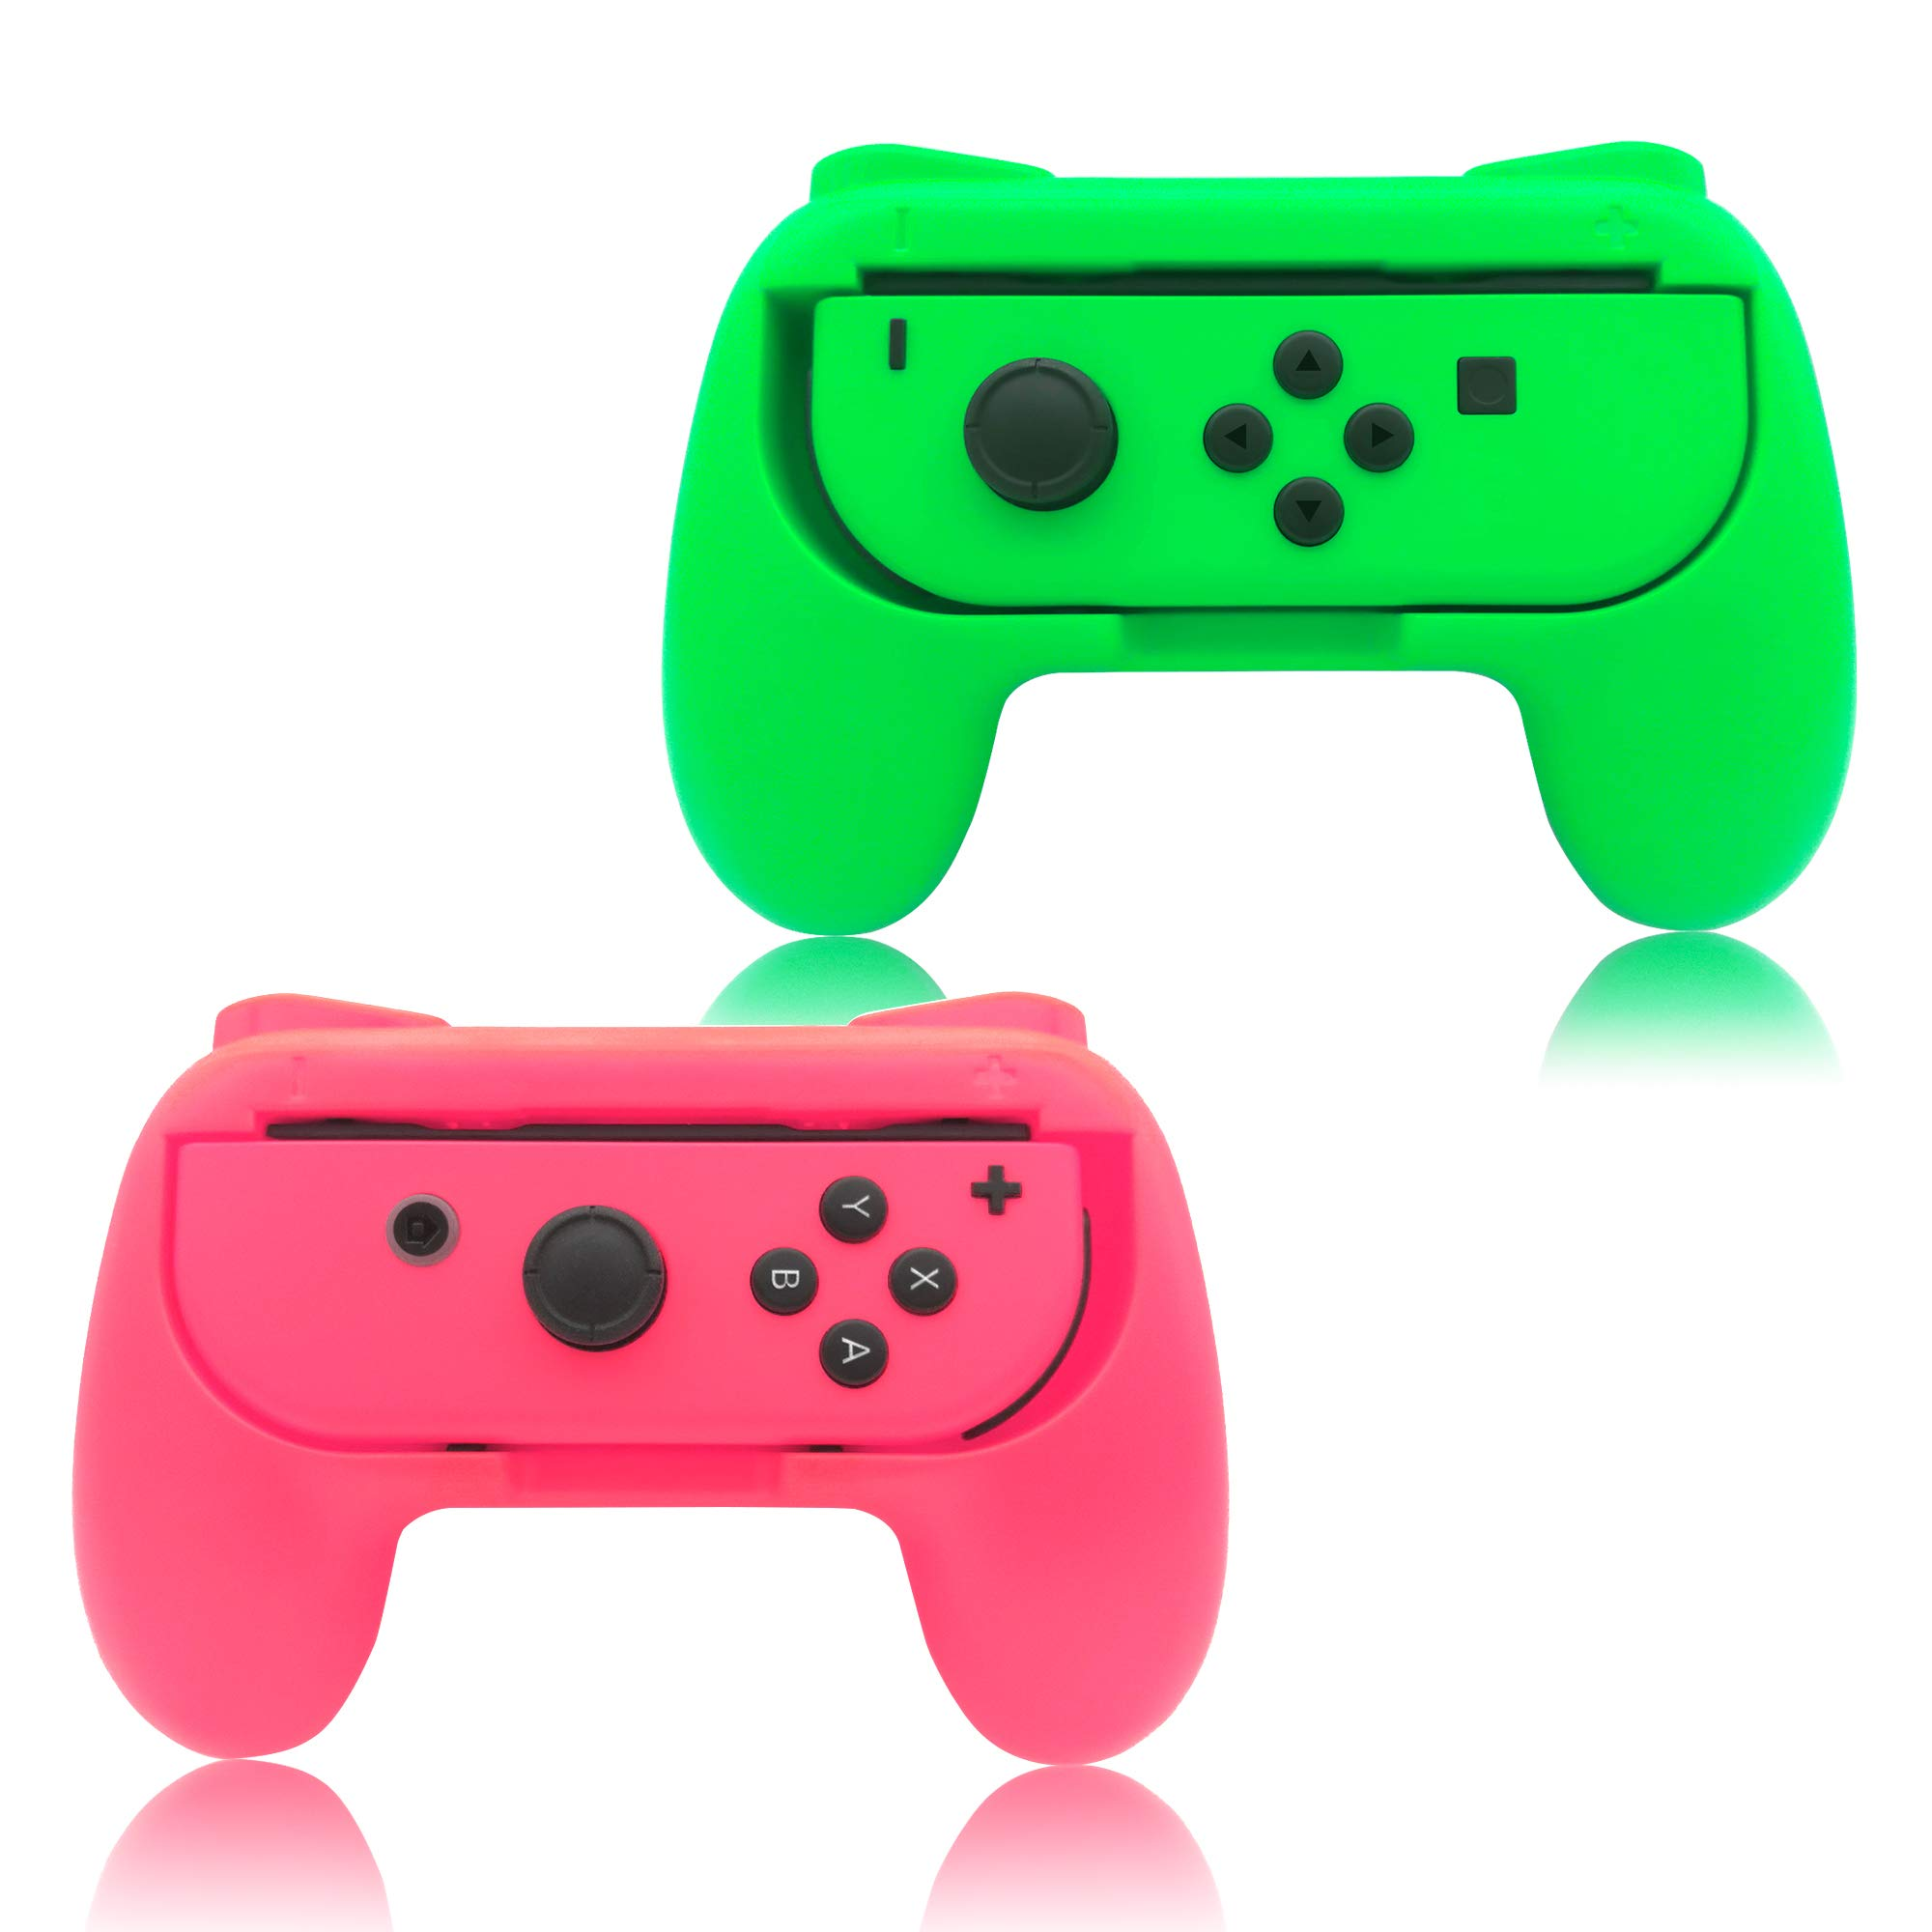 Grips for Nintendo Switch Joy-Con,FYOUNG Controllers for Nintendo Switch Joy Con - Green and Pink (2 Packs) by FYOUNG